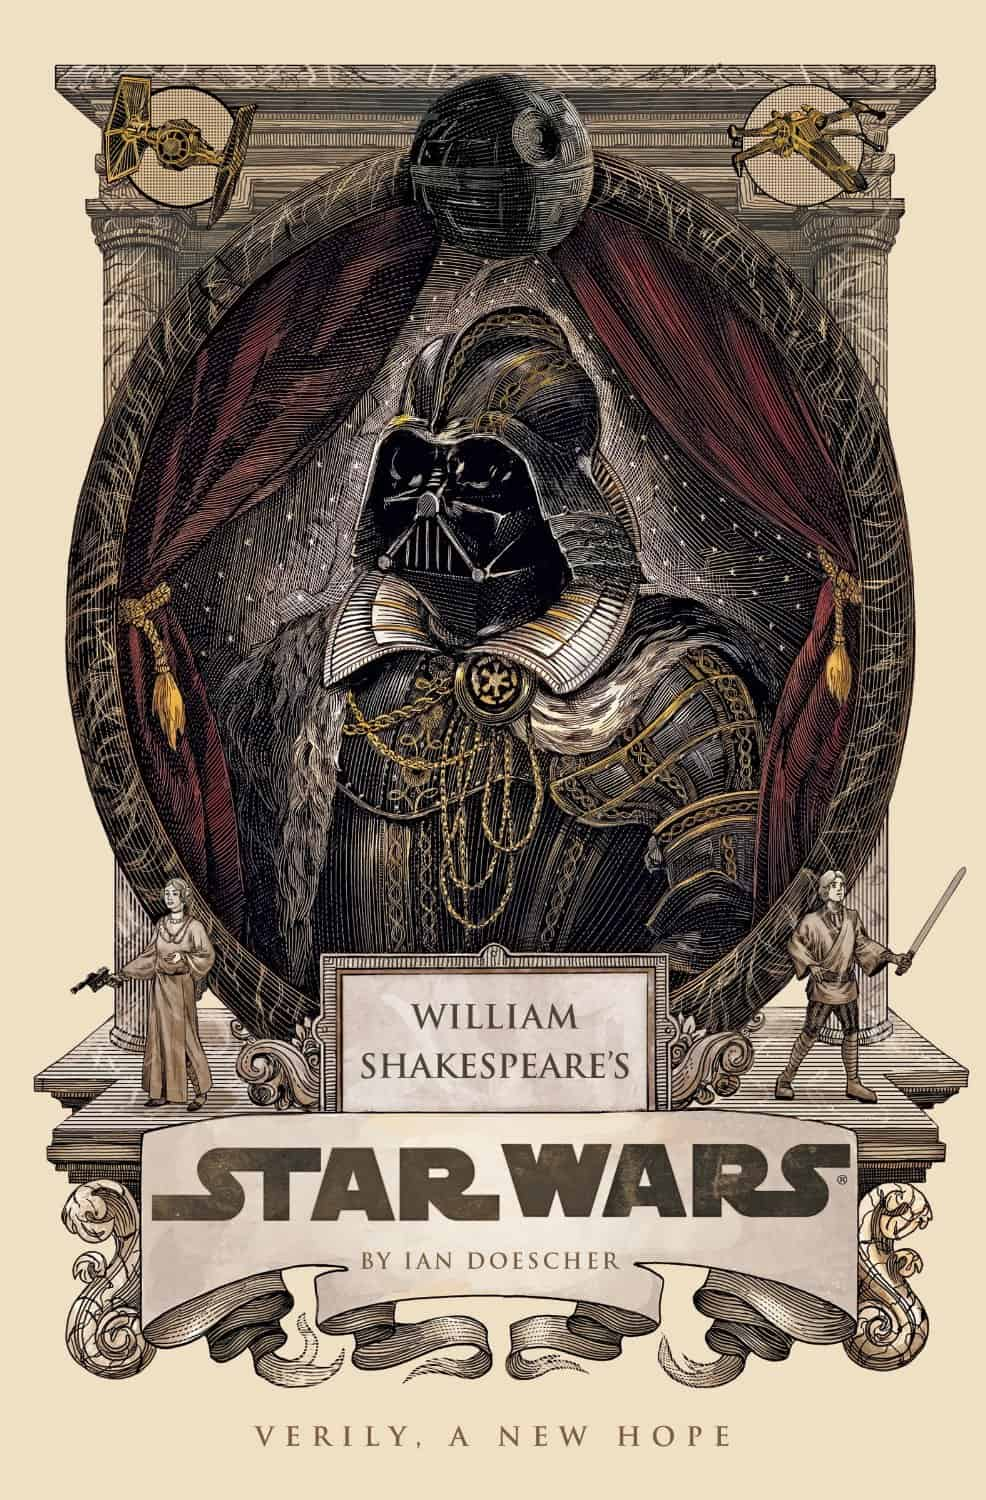 A long time ago in a galaxy far, far away… Shakespeare wrote Star Wars.